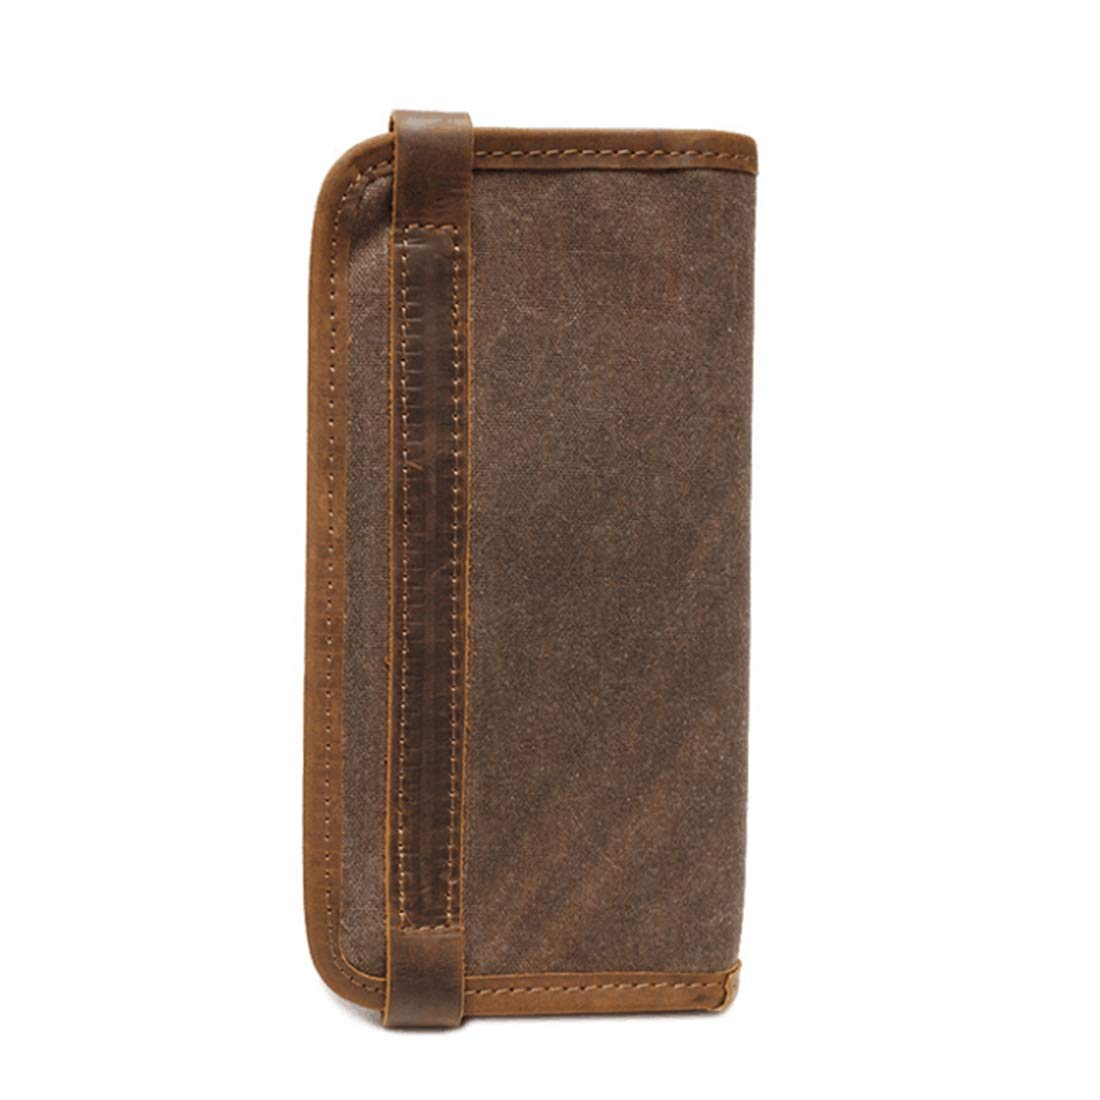 Color : Coral Blue Bifold Hybrid RFID Block KRPENRIO Flipout Wallet in PU Leather for Men